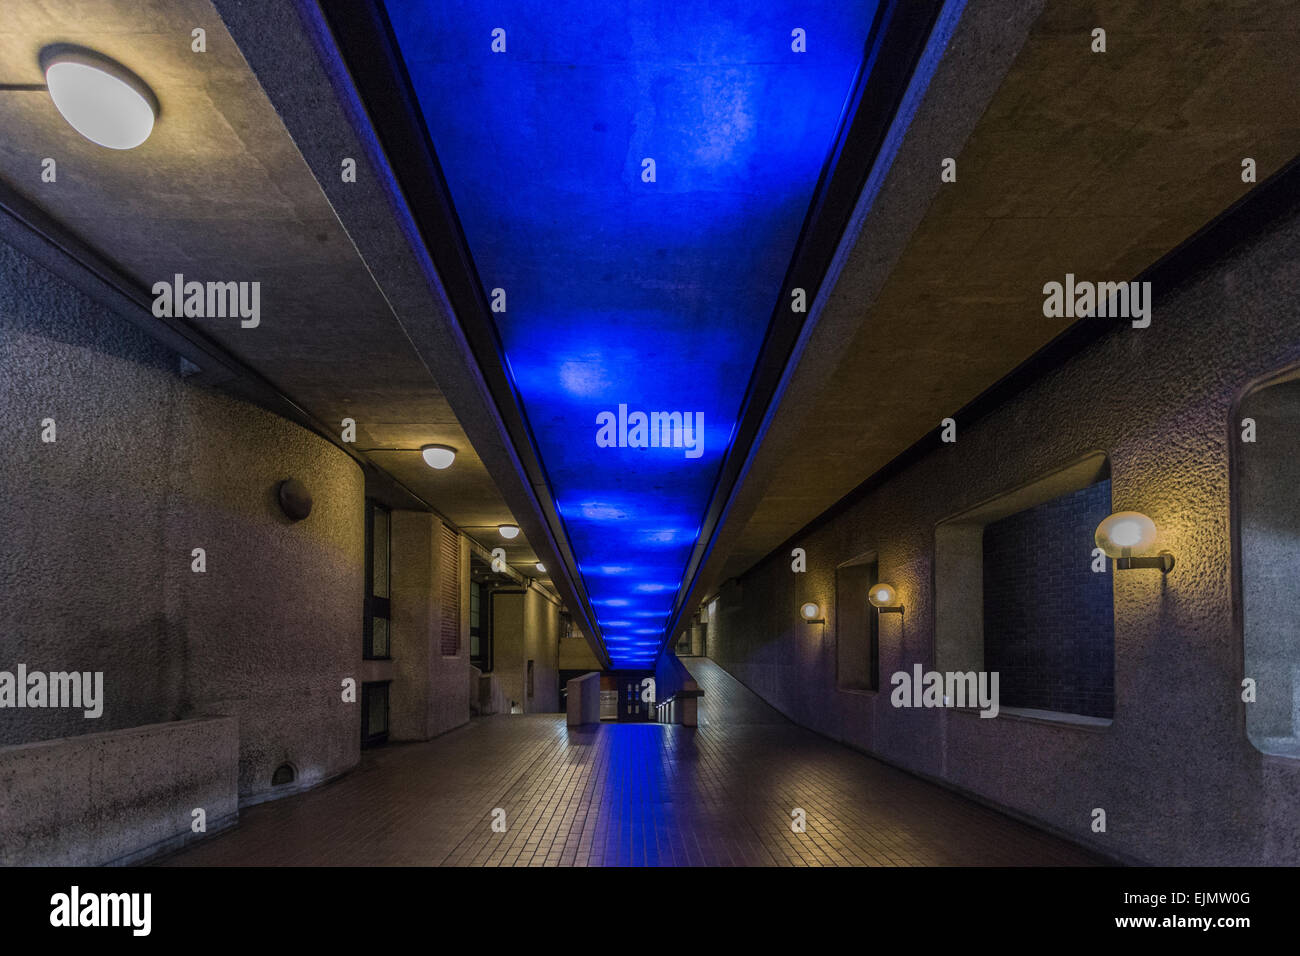 Barbican Centre Pedestrian Ramp, City of London, England, United Kingdom Stock Photo